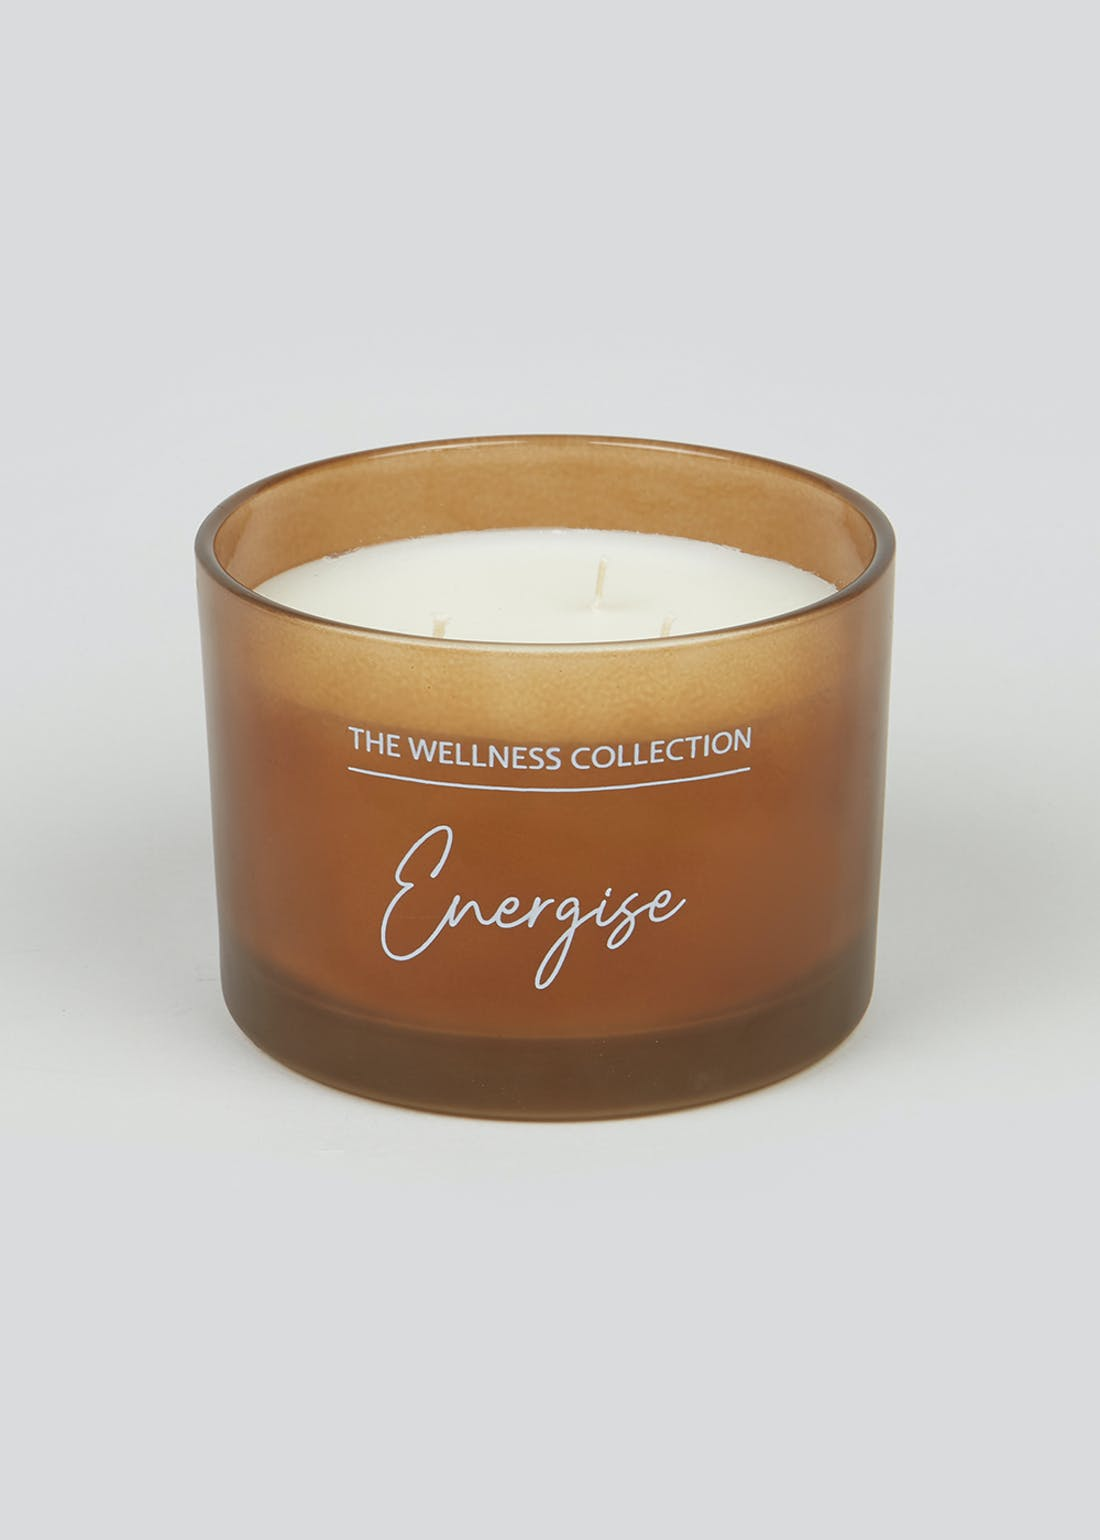 Wellness Energise Scented Candle (12cm x 8.5cm)